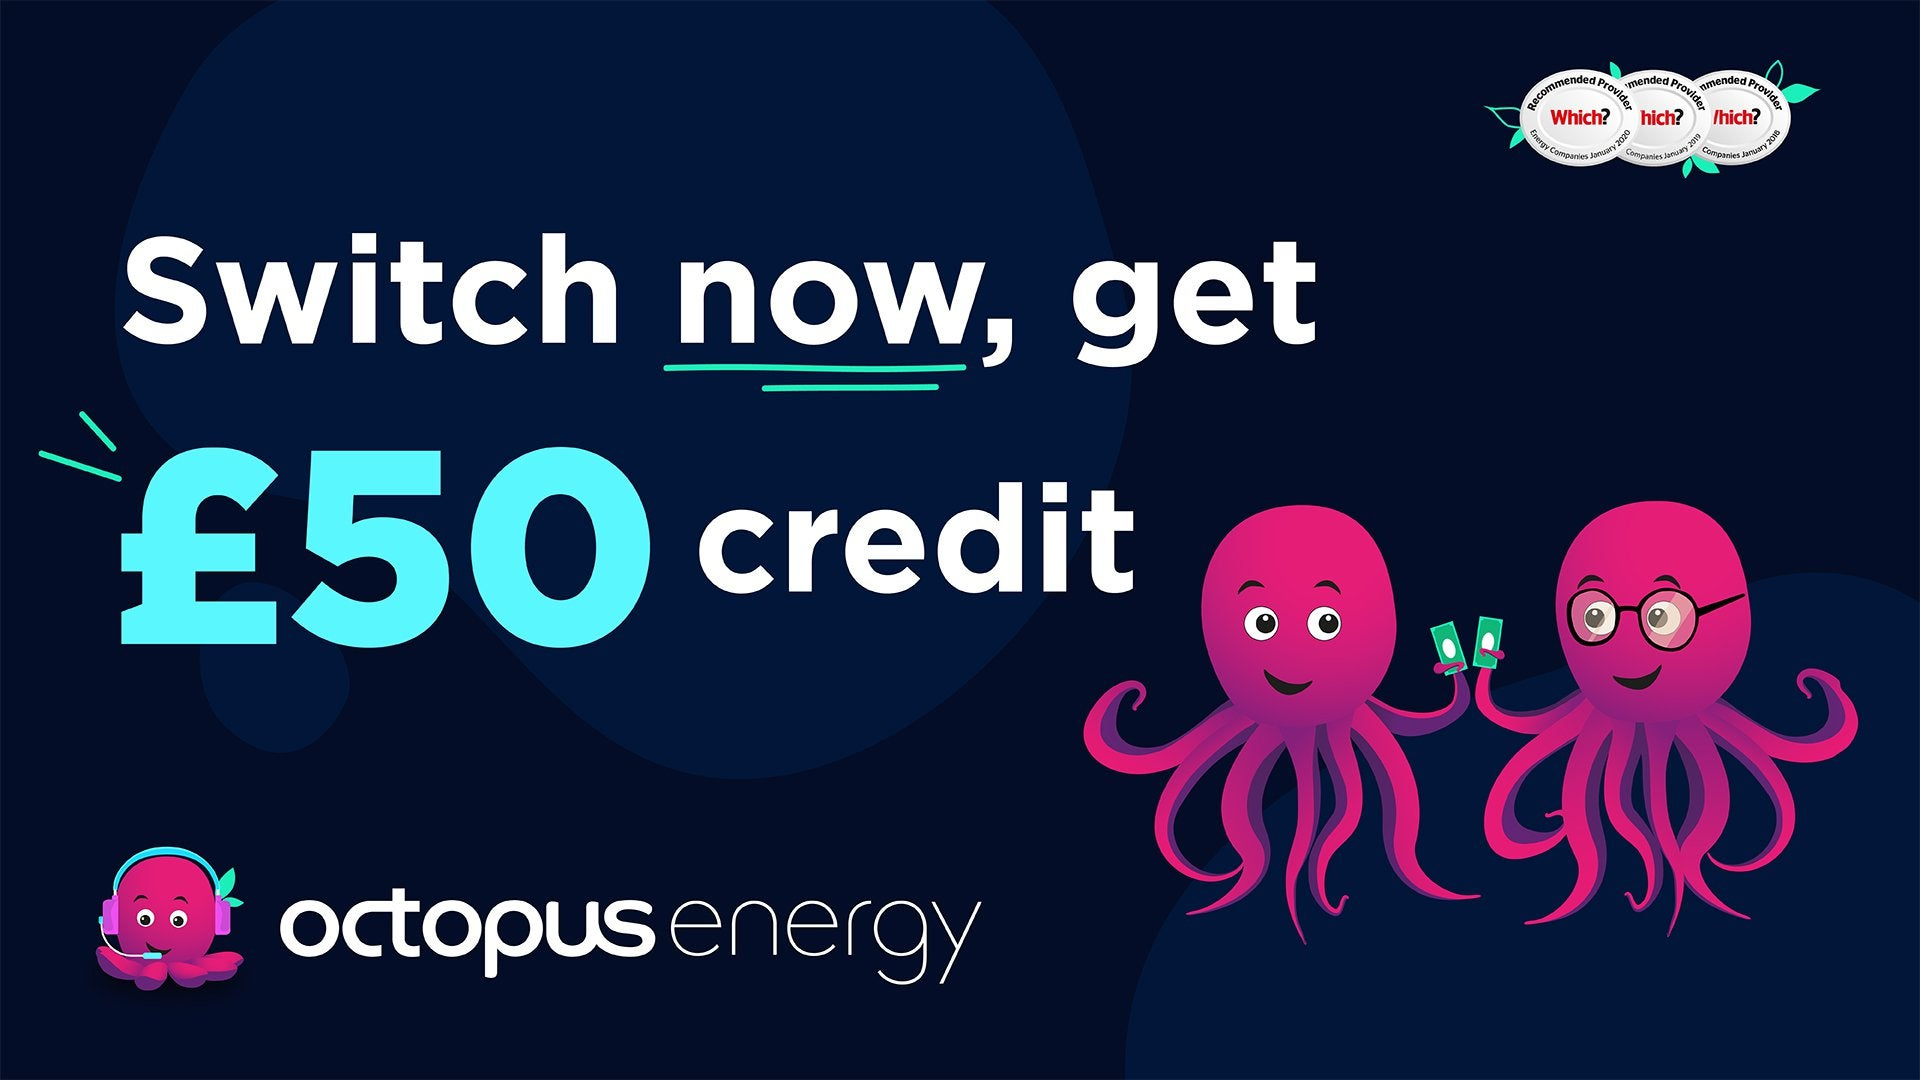 Switch to Octopus and get £50 credit